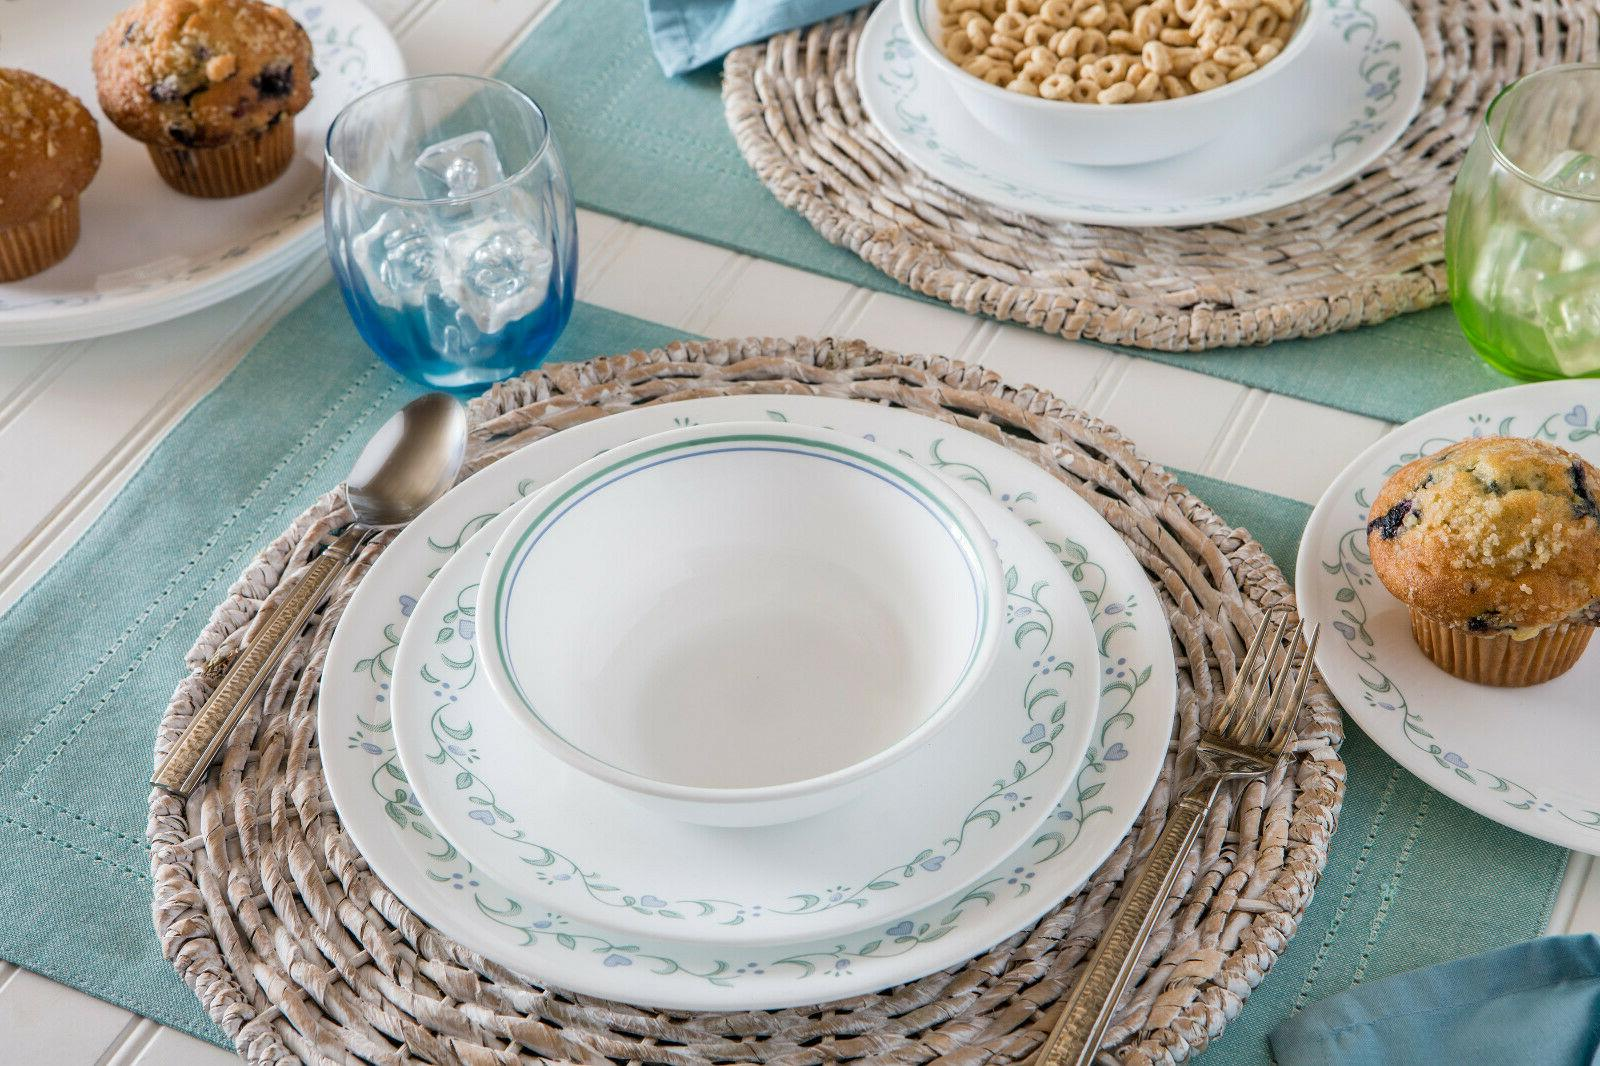 16 Piece Dinnerware Set Lightweight